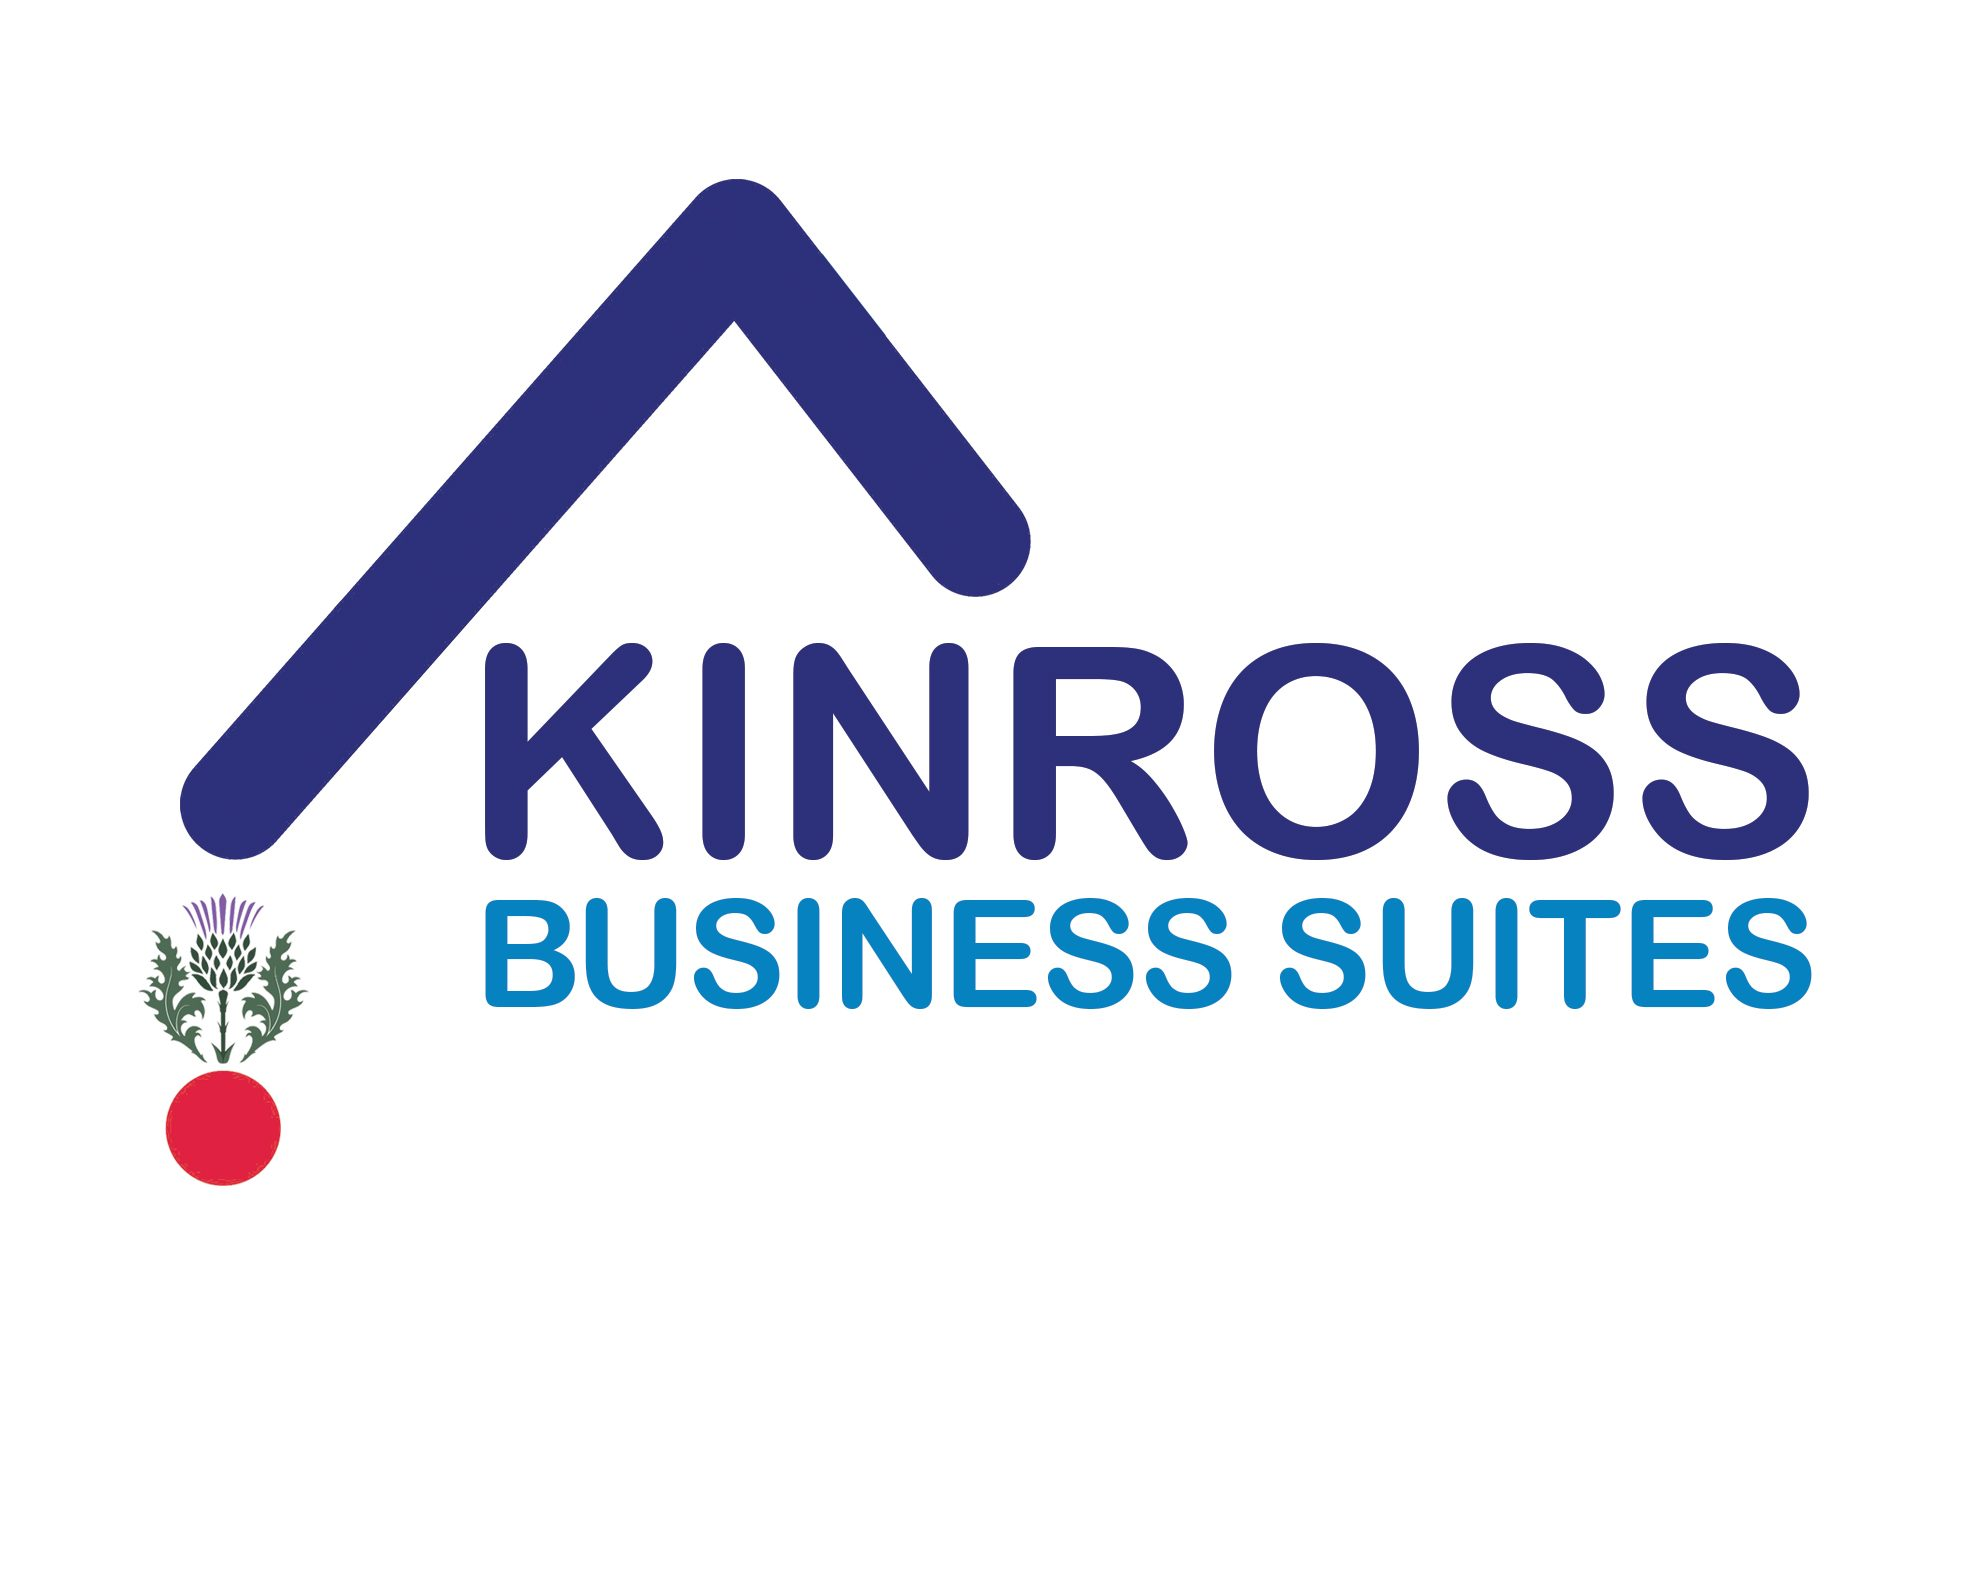 Kinross Business Suites